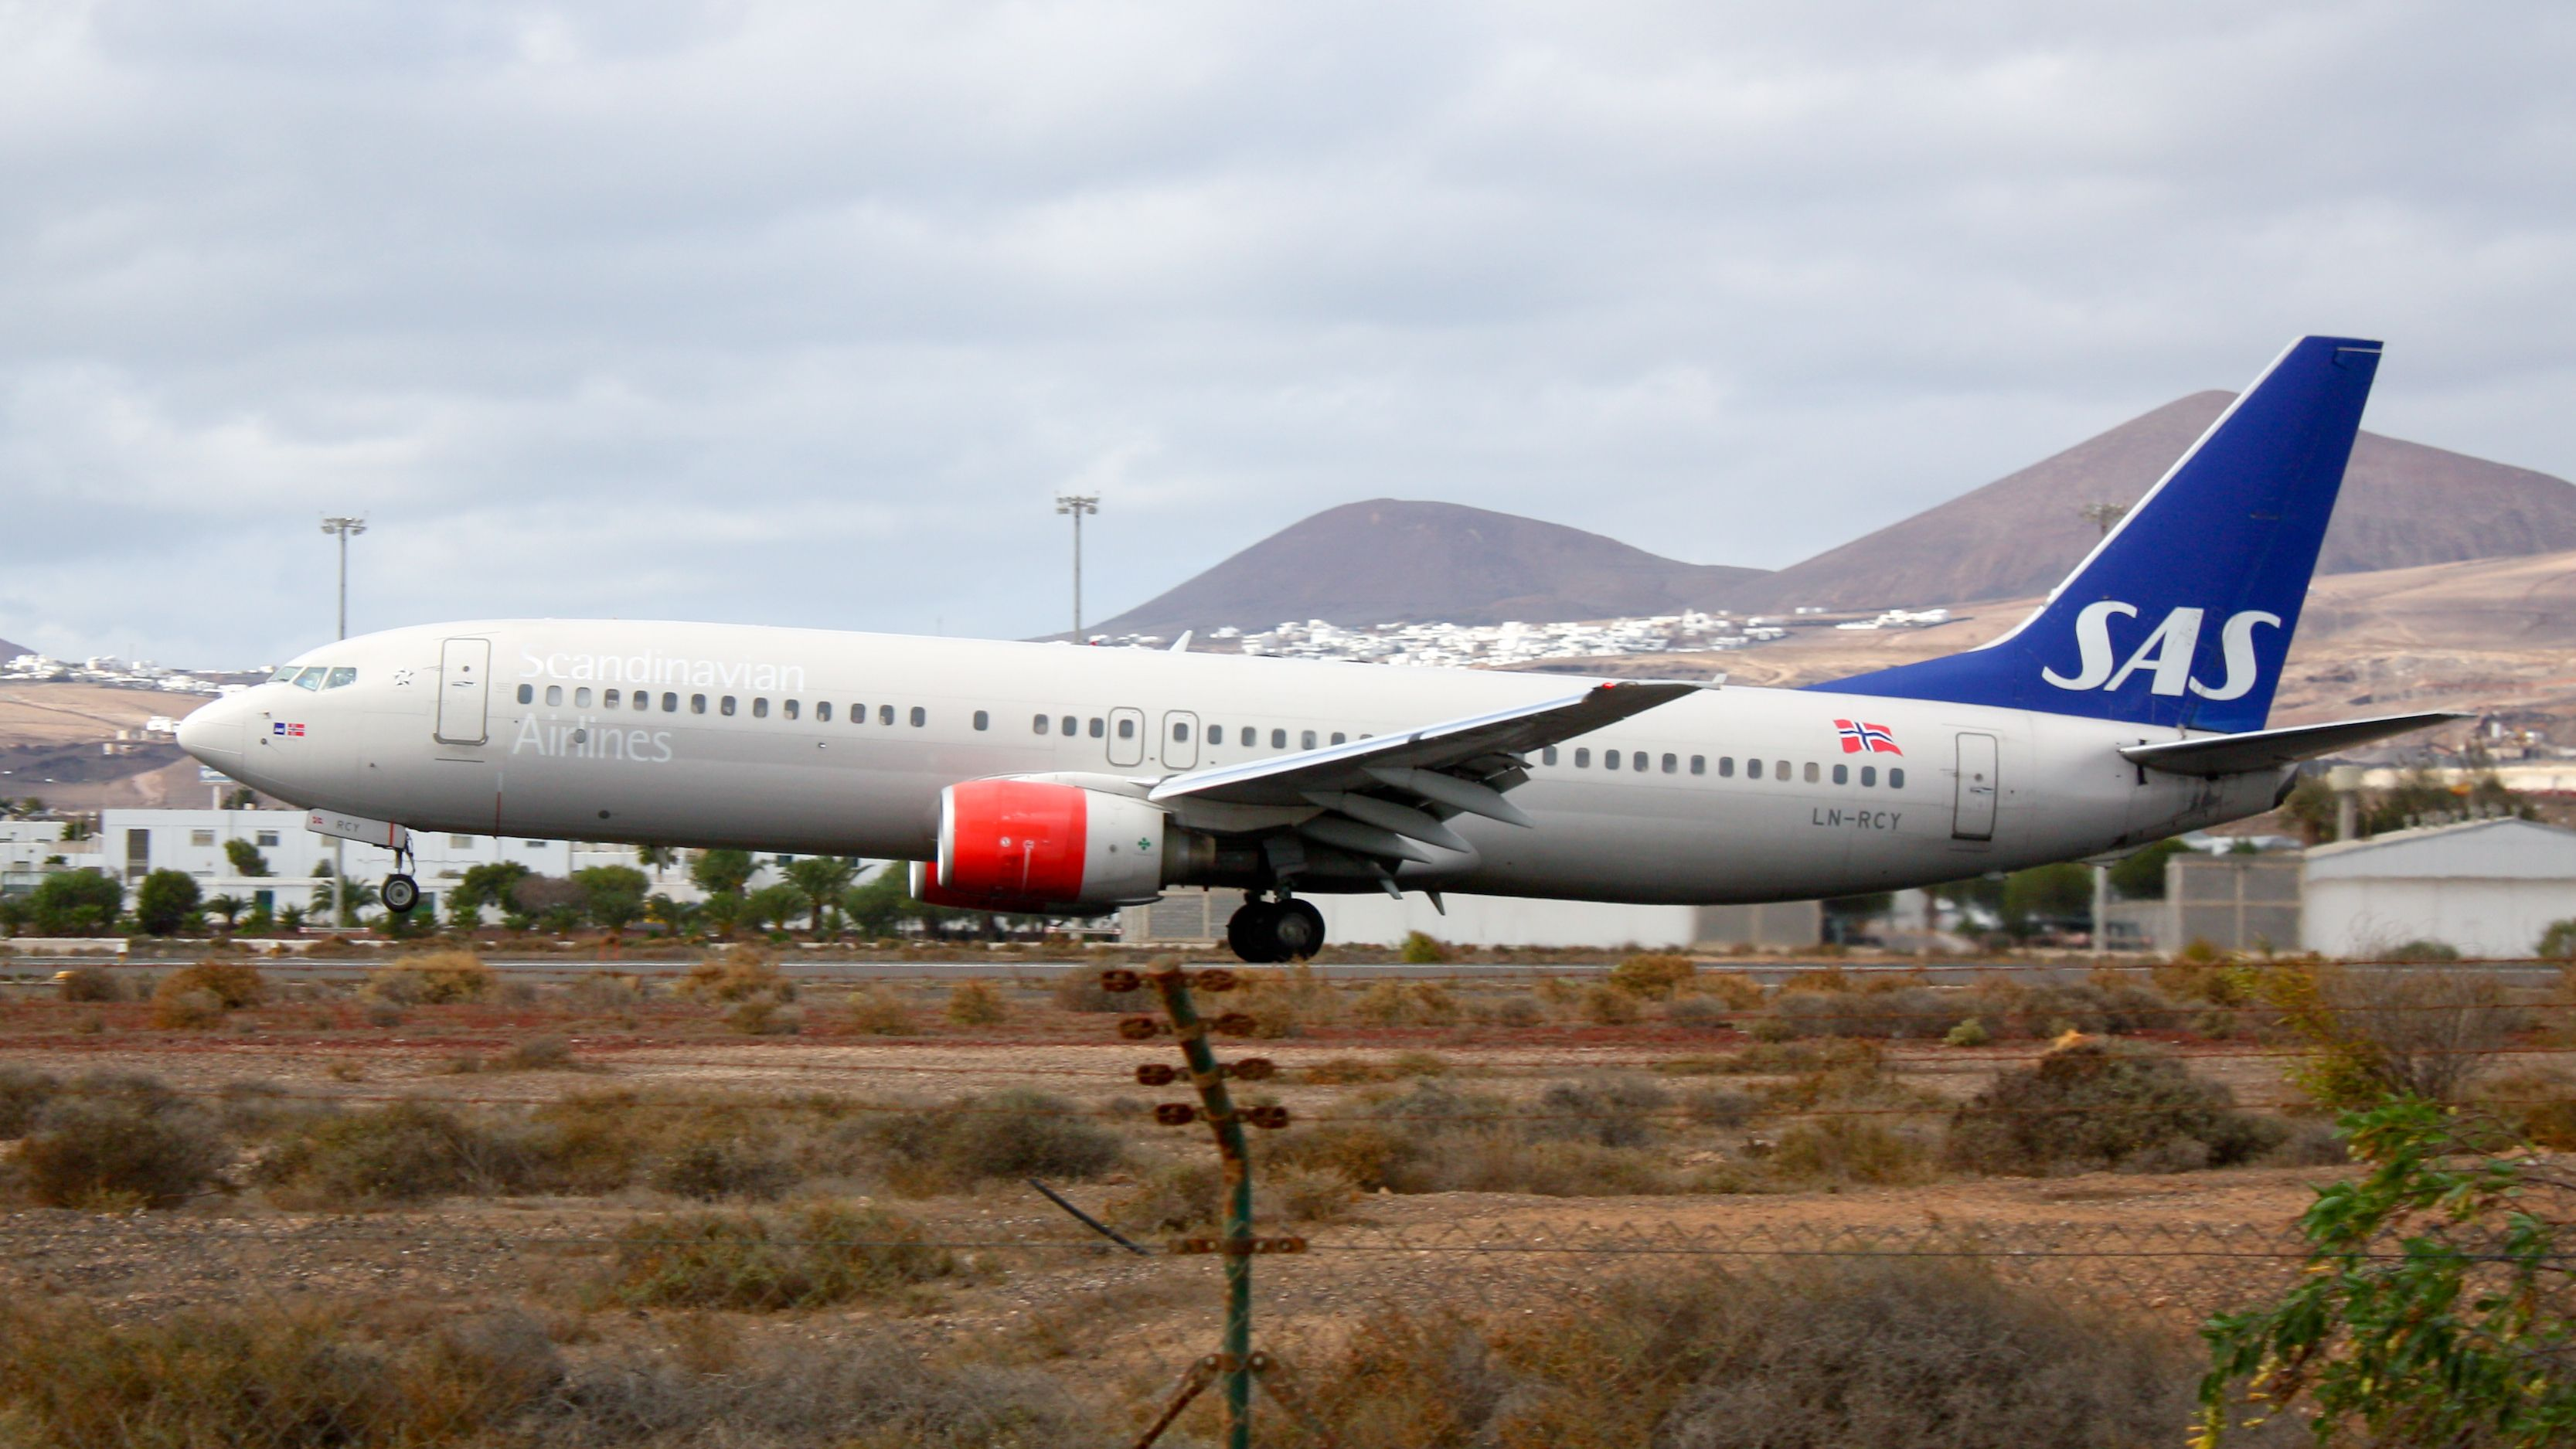 Sas Scandinavia Scandinavian Airlines System Norway Airlines Oil And Gas News